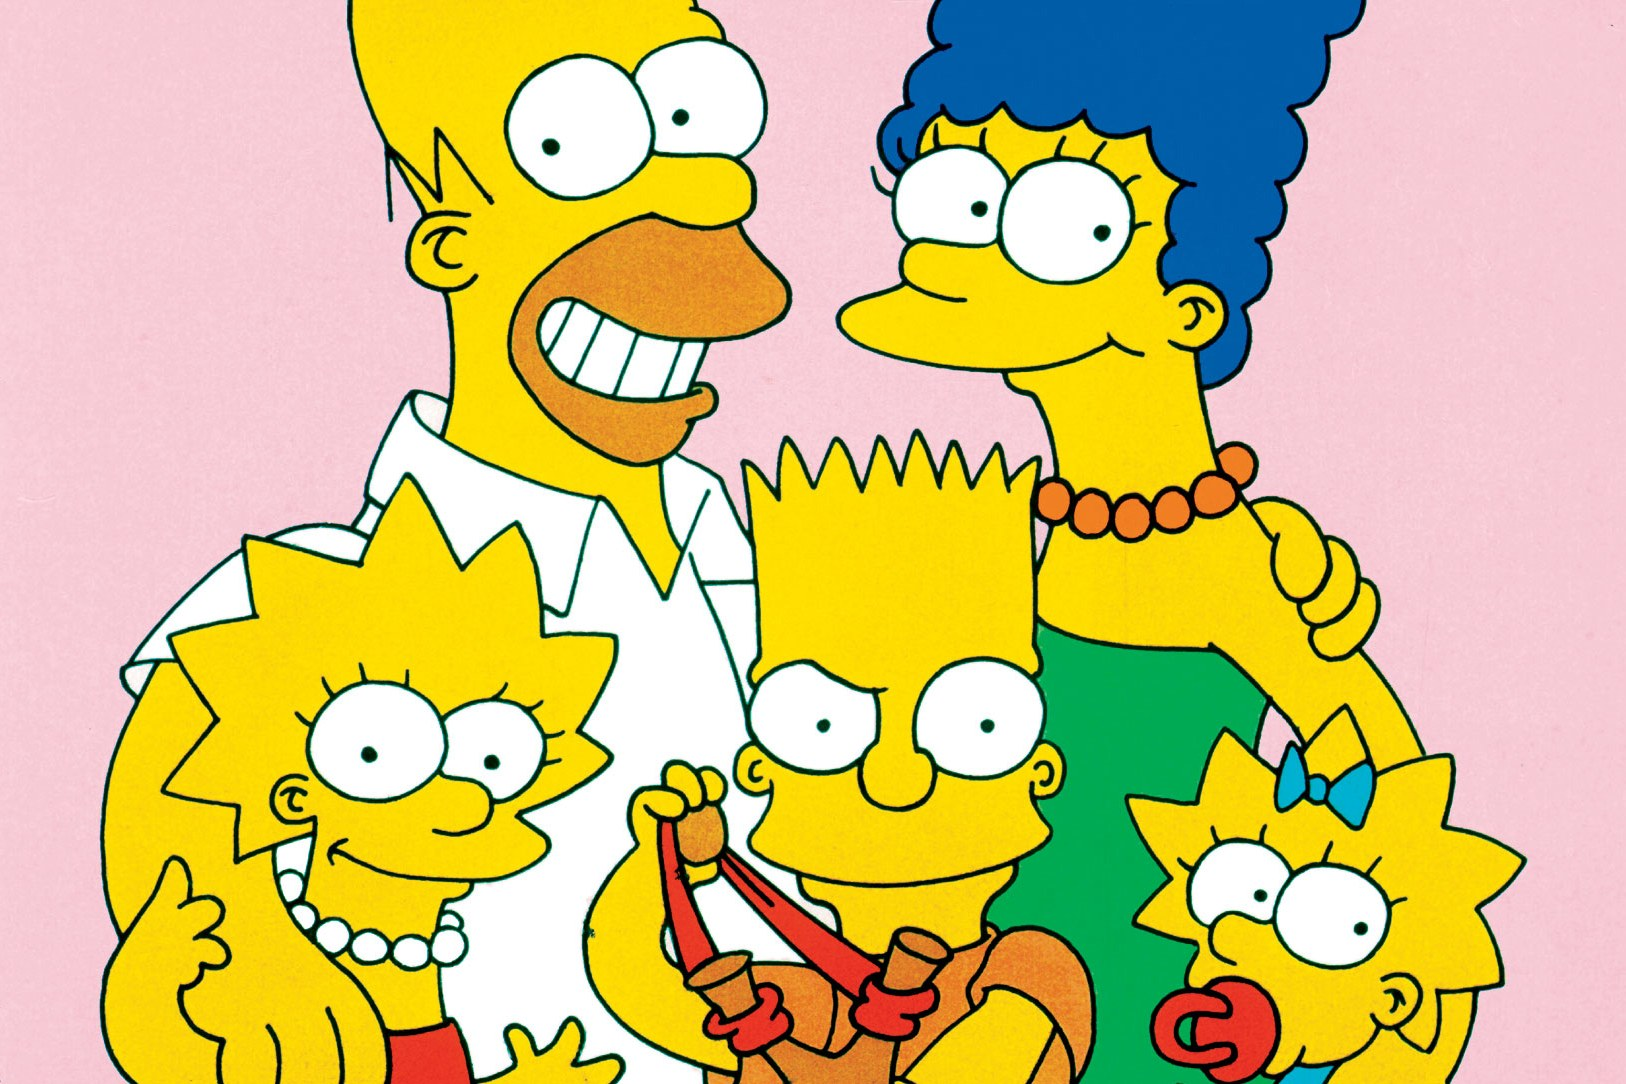 Falling down pain back cartoon clipart pain stars lines picture freeuse The Simpsons Family Values: How the Cartoon Took Over TV | Vanity Fair picture freeuse